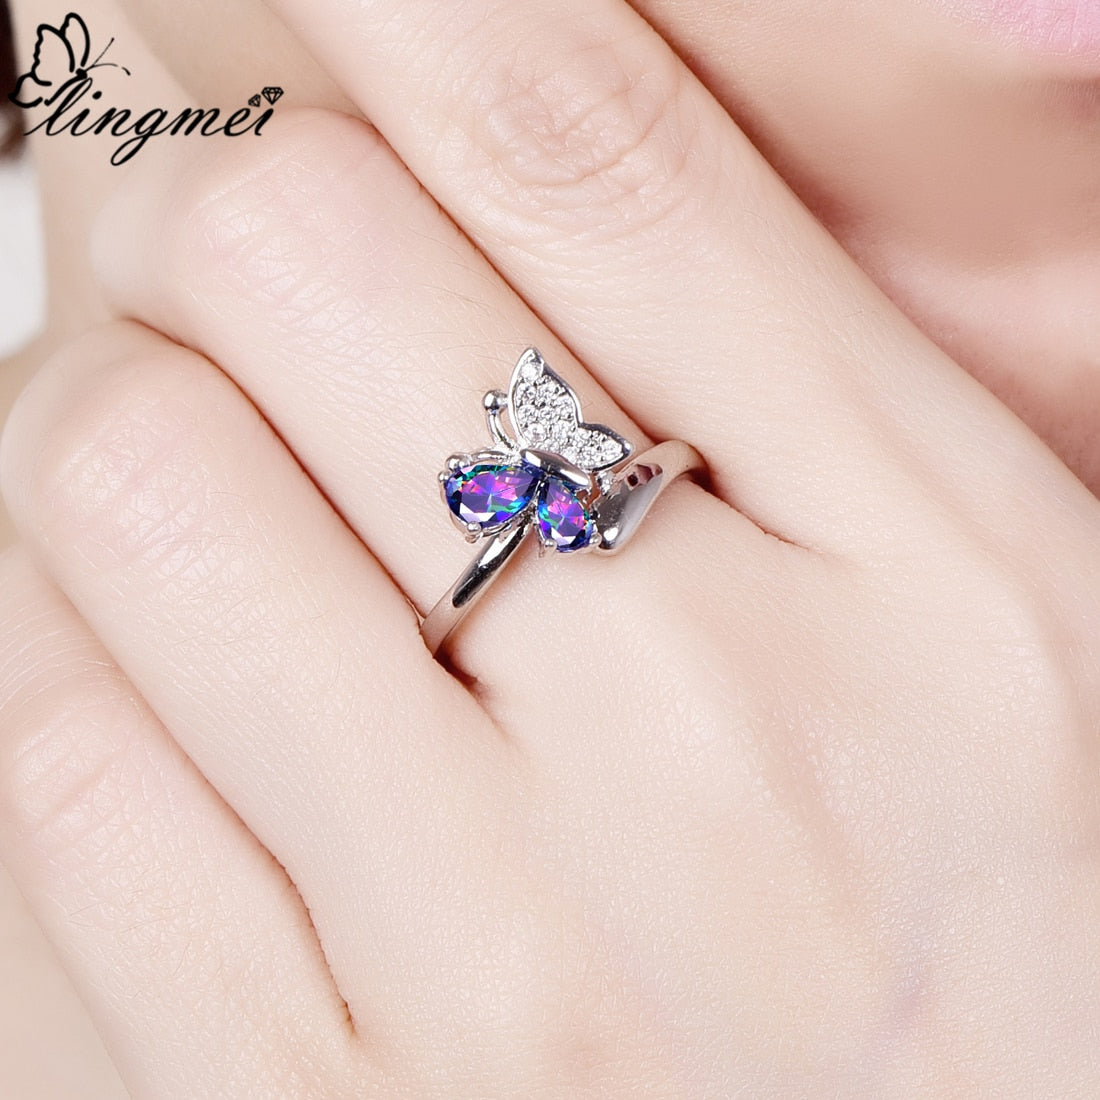 lingmei Butterfly Rainbow Cubic Zircon Silver Color Ring Size 6 7 8 9